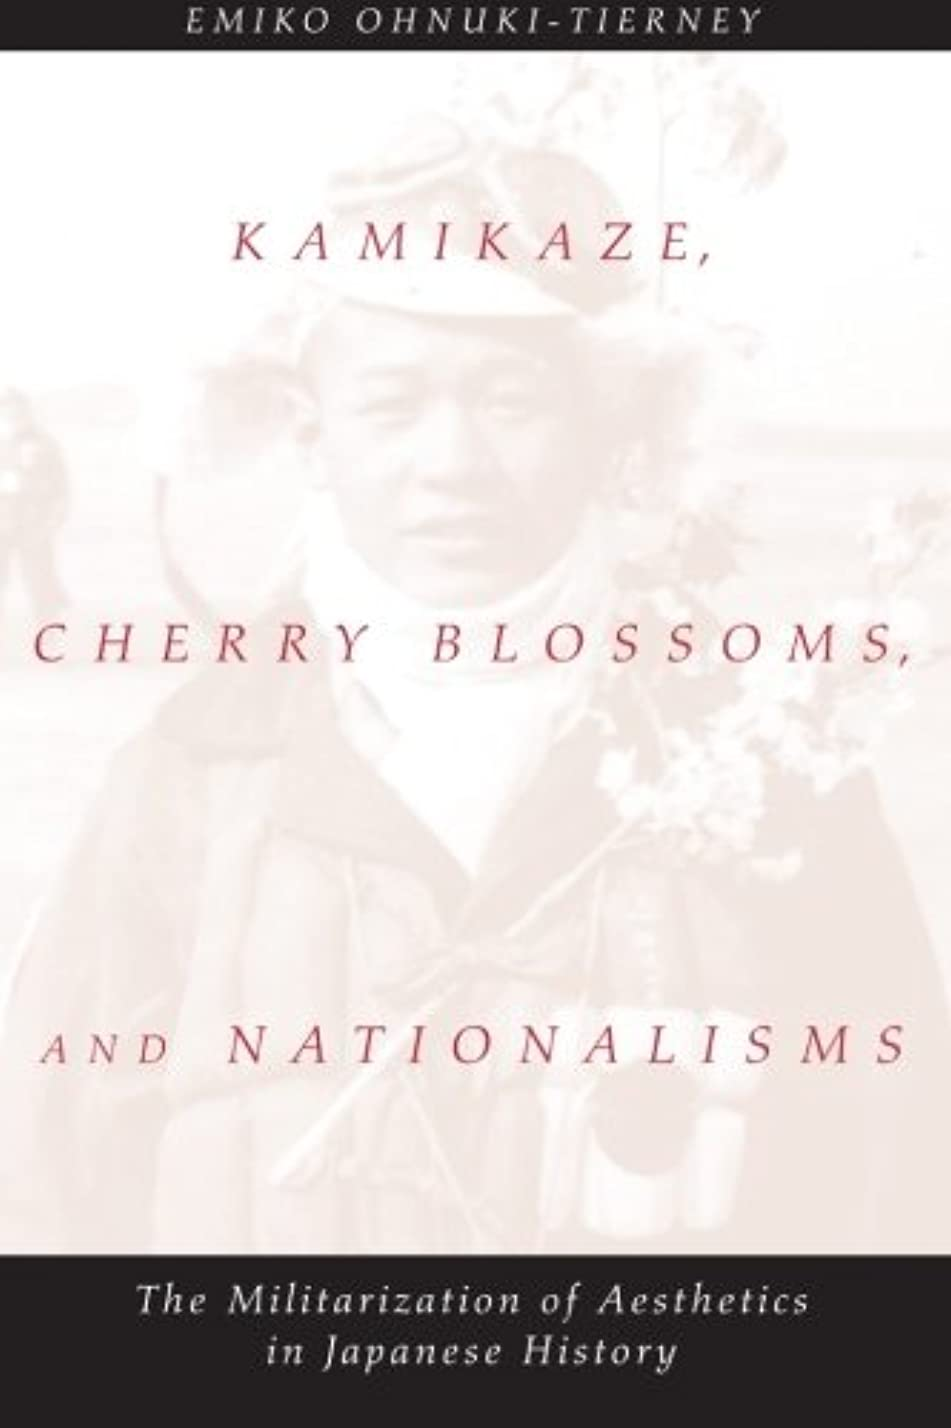 心臓リースイKamikaze, Cherry Blossoms, and Nationalisms: The Militarization of Aesthetics in Japanese History